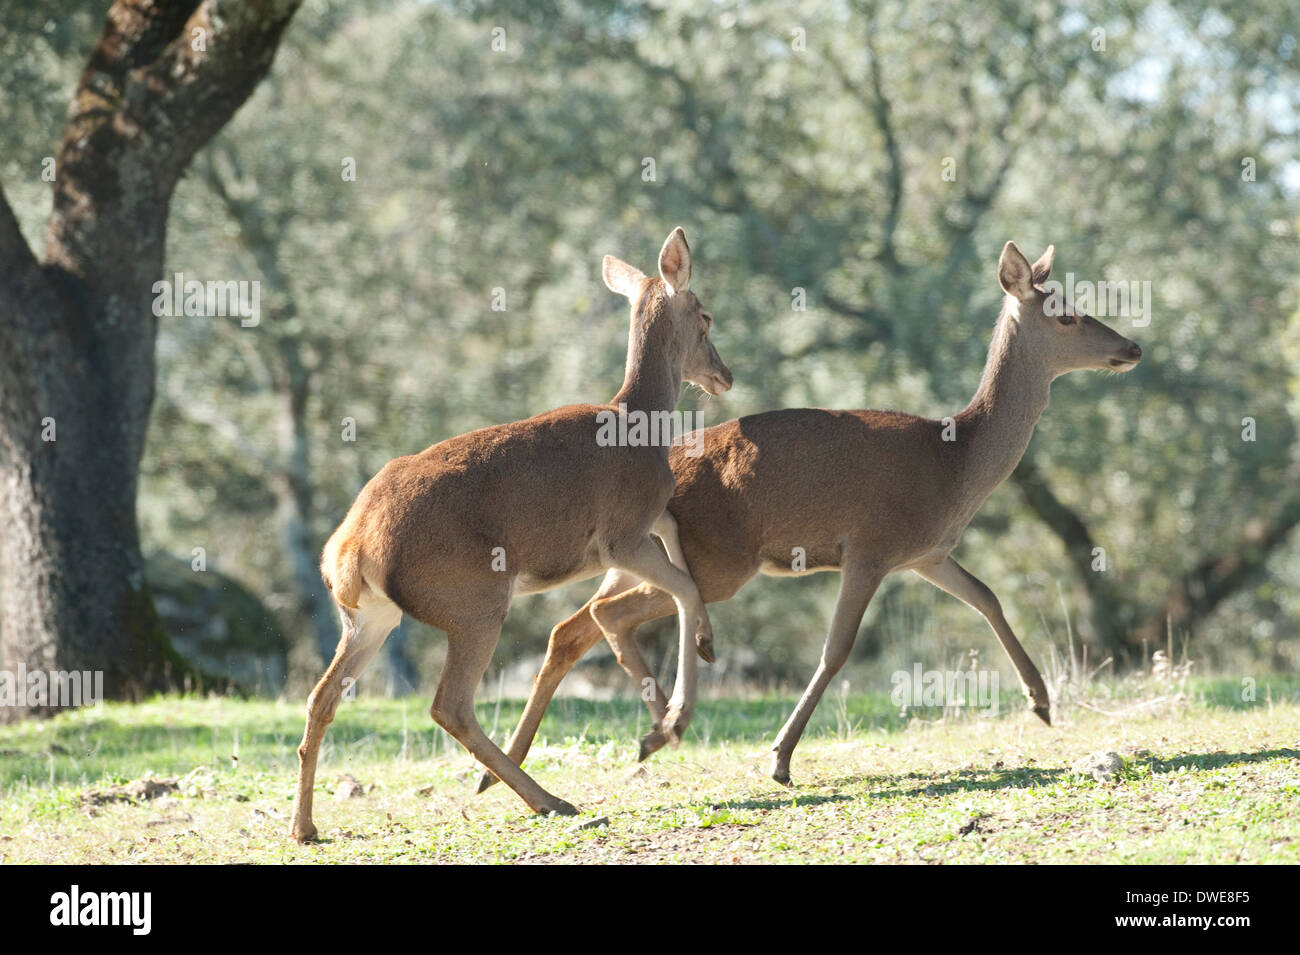 Red Deer Cervus elaphus Andalucia Spain - Stock Image